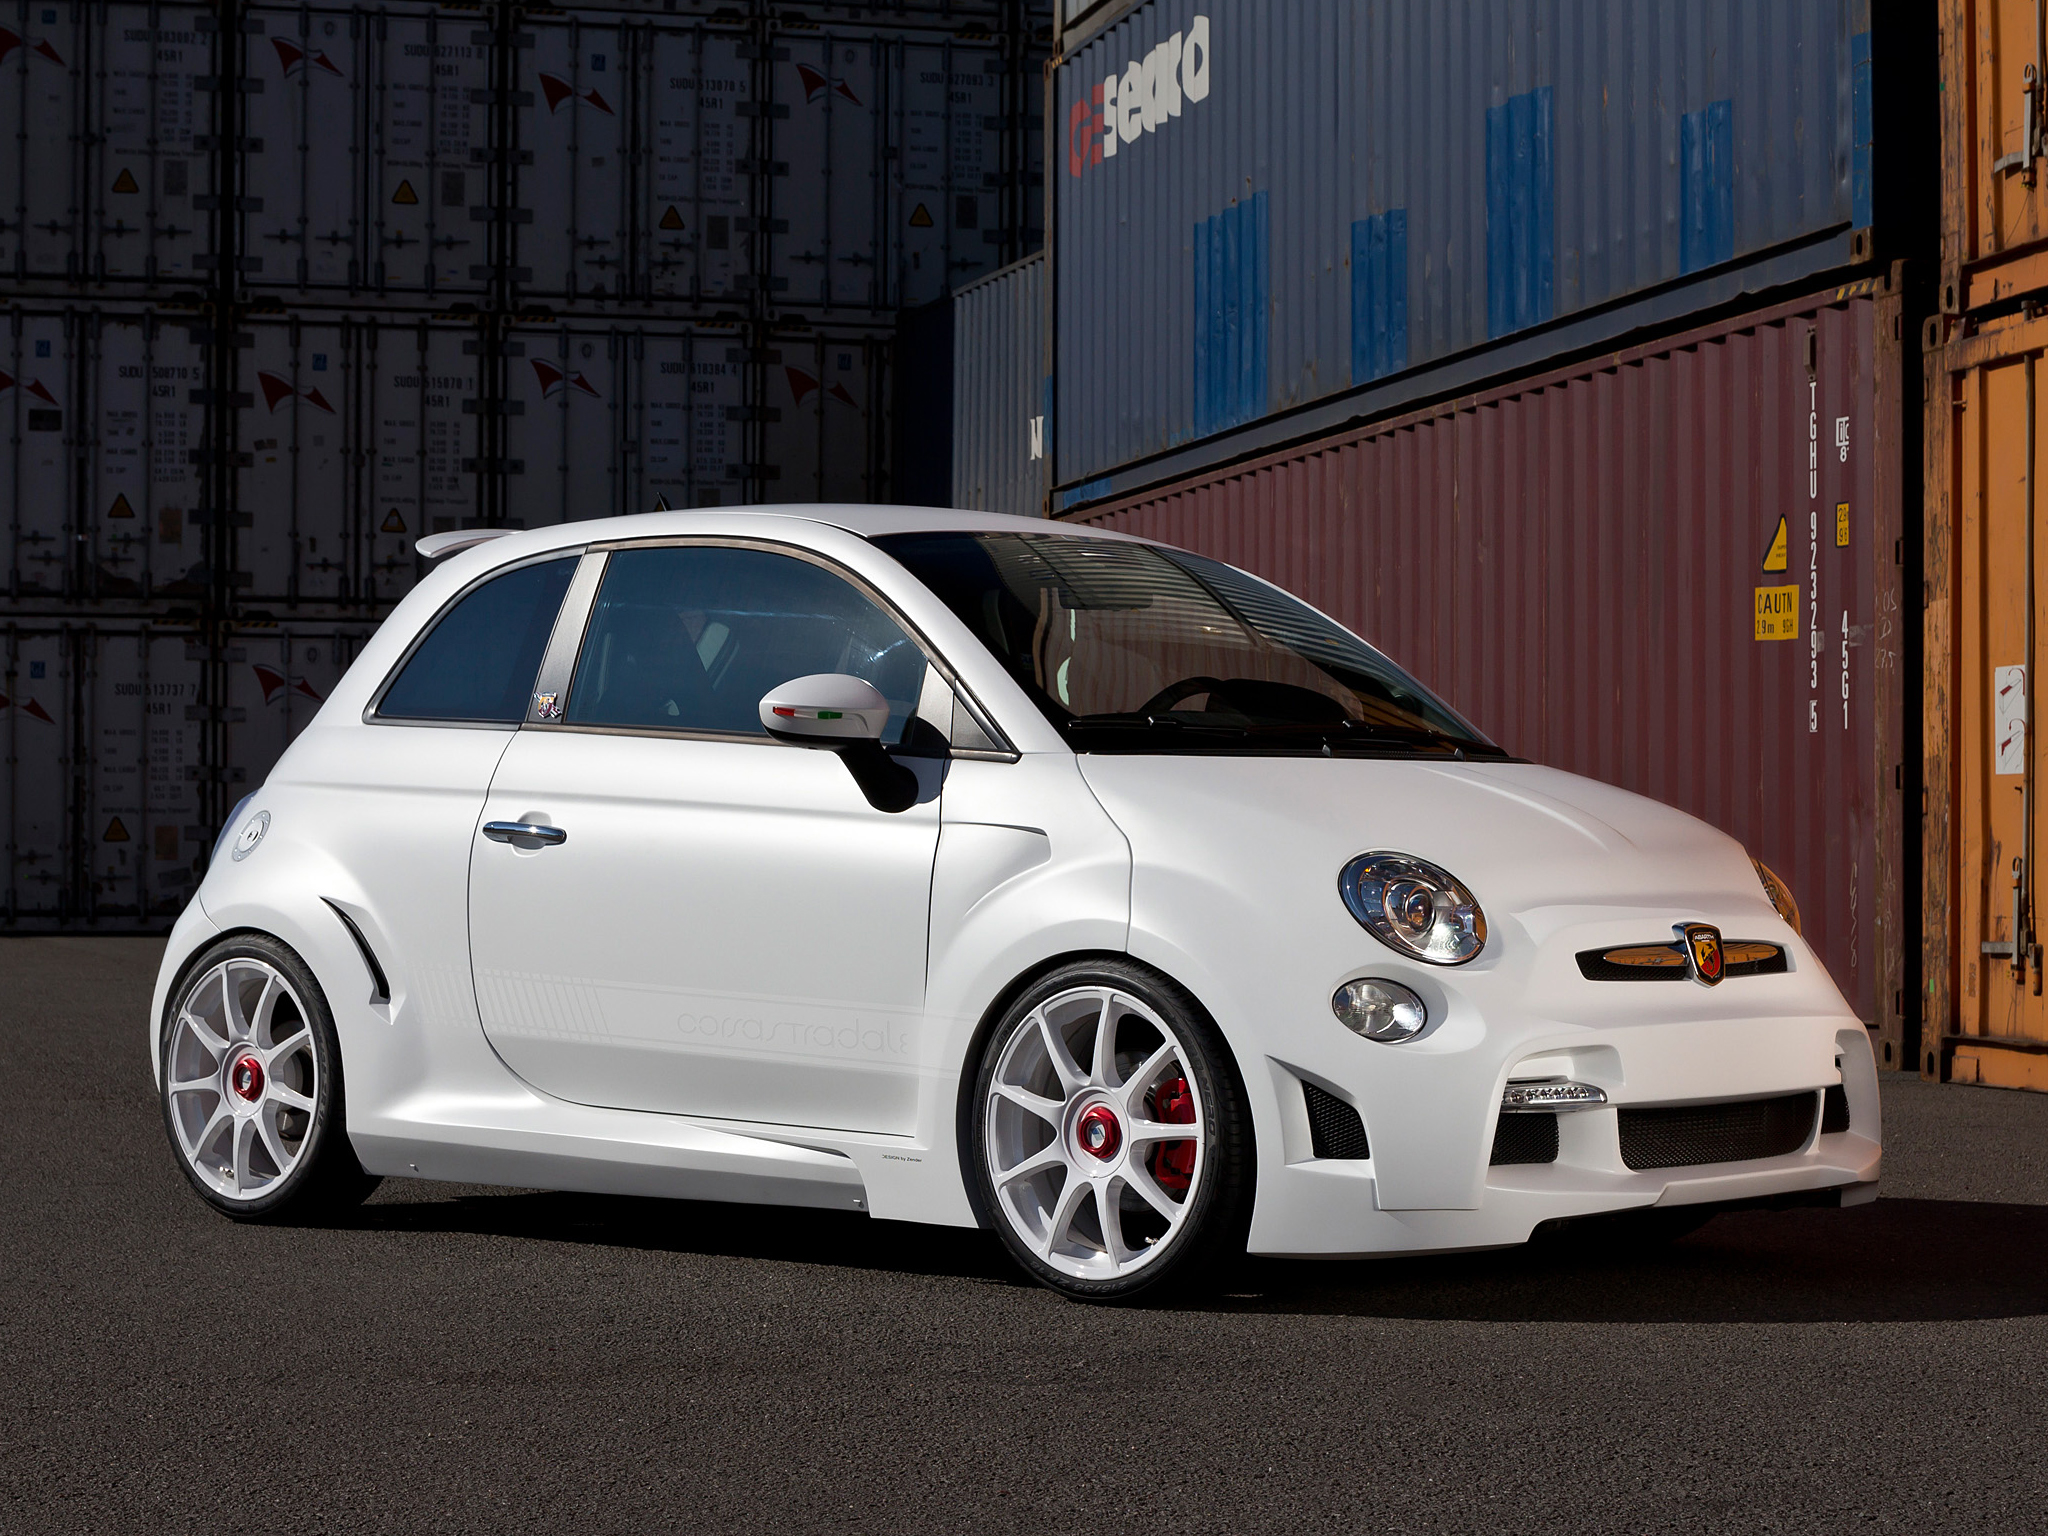 zender abarth 500 corsa stradale has 240 hp video. Black Bedroom Furniture Sets. Home Design Ideas